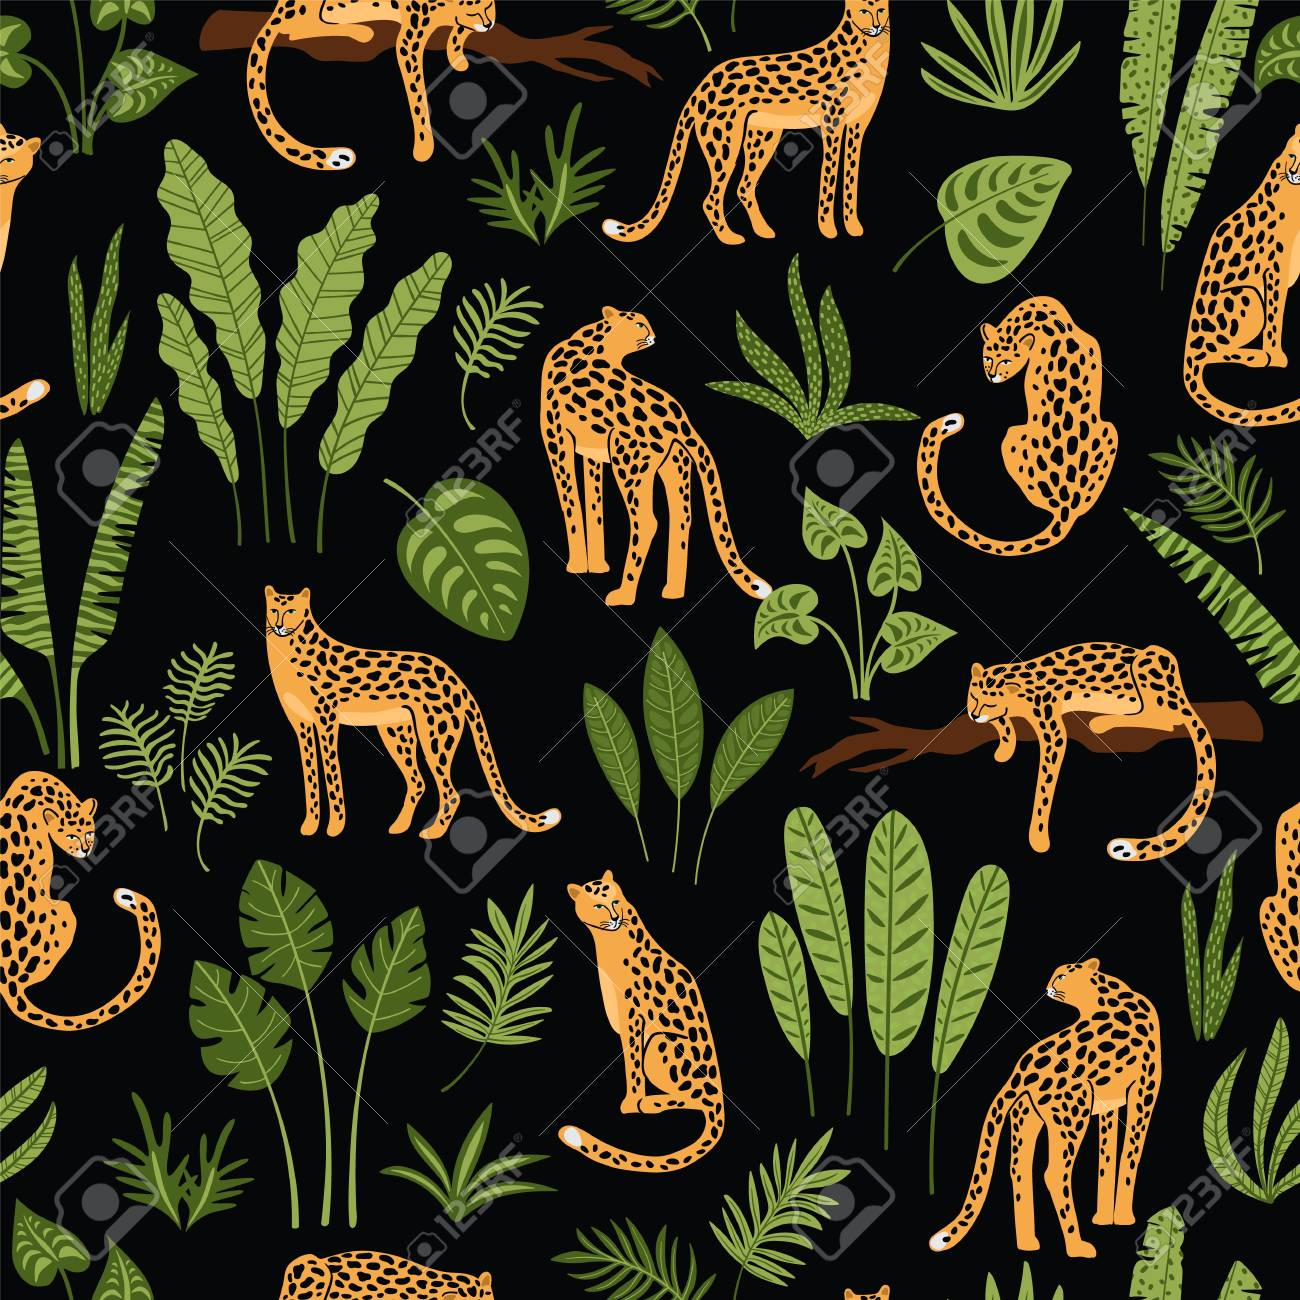 Vestor seamless pattern with leopards and tropical leaves. Trendy style. - 102561653